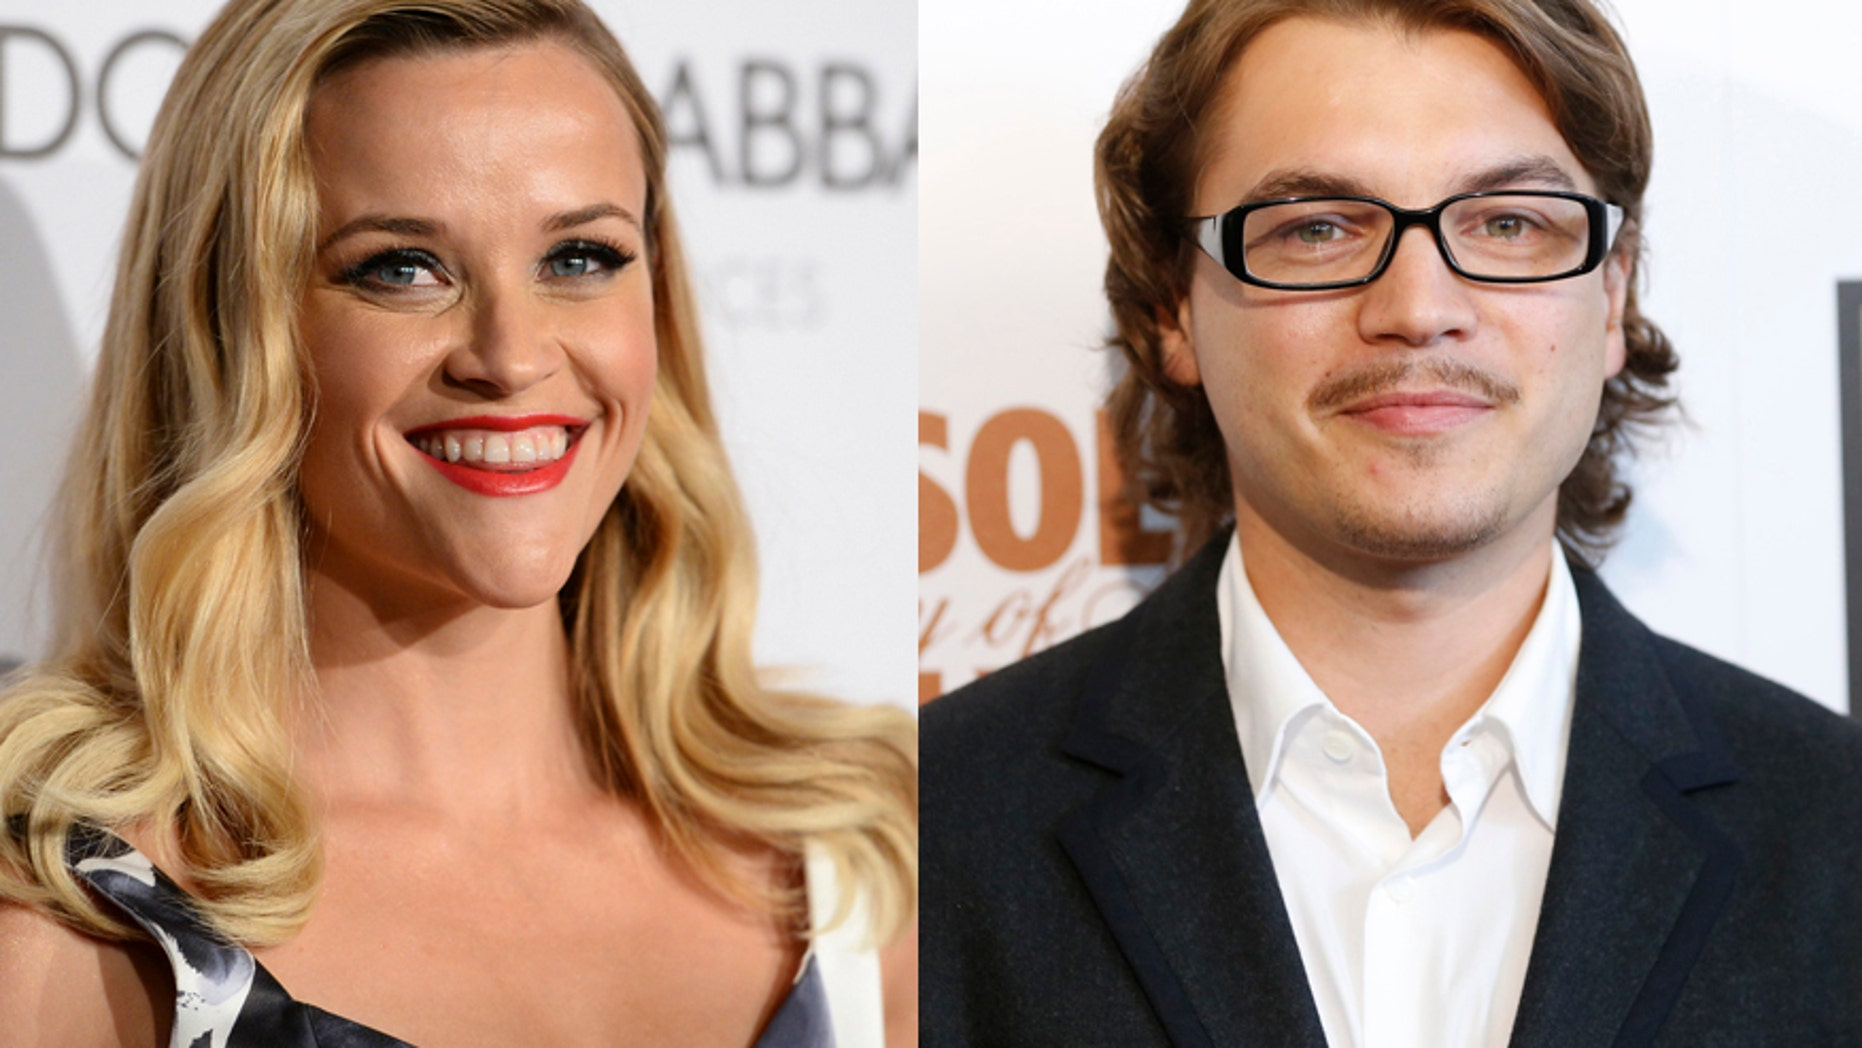 Actors Reese Witherspoon (left) and Emile Hirsch.